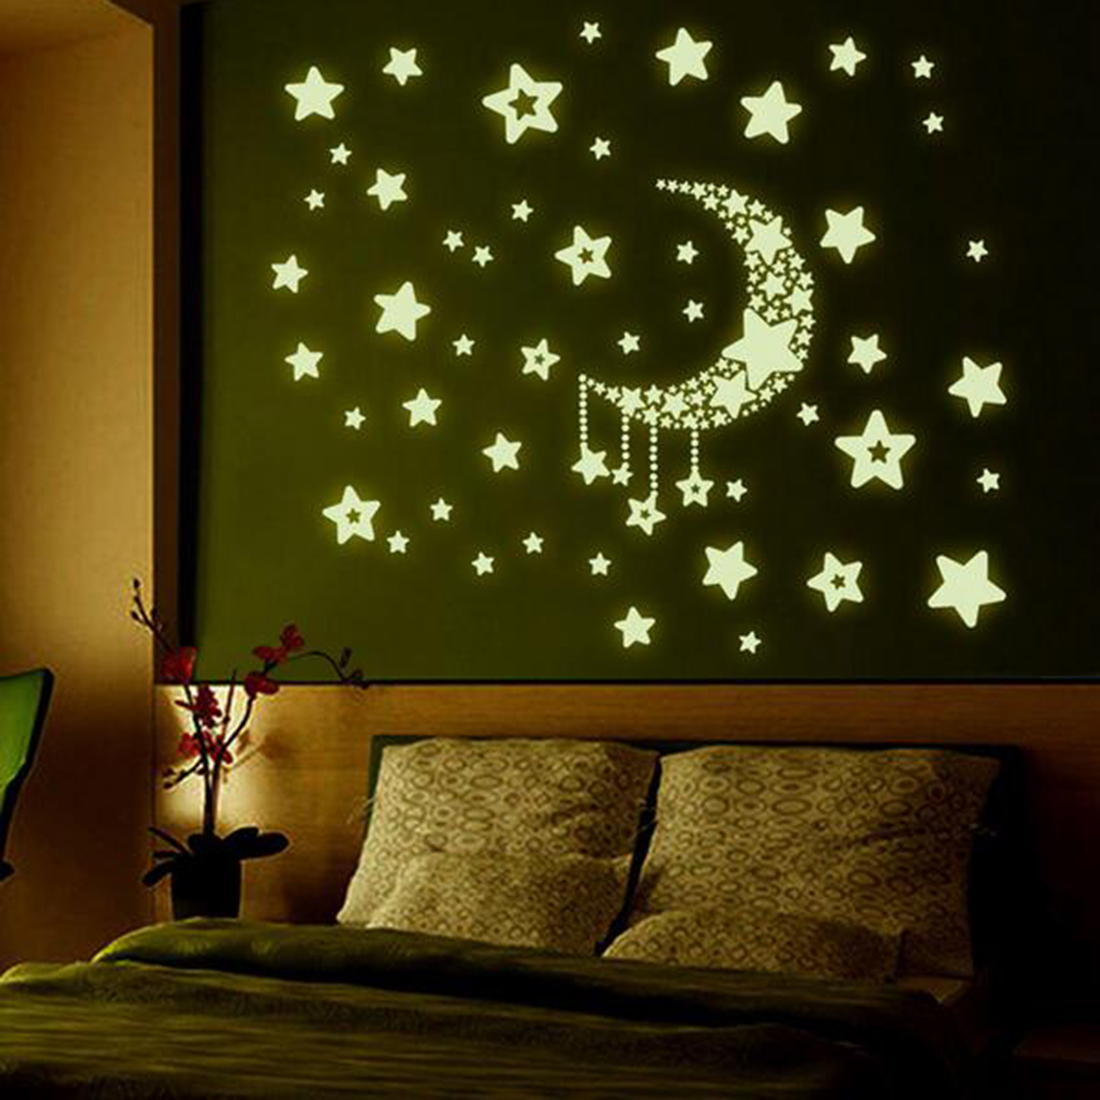 fashion night light luminous stickers home decor home decoration wall sticker rooms wall decals. Black Bedroom Furniture Sets. Home Design Ideas